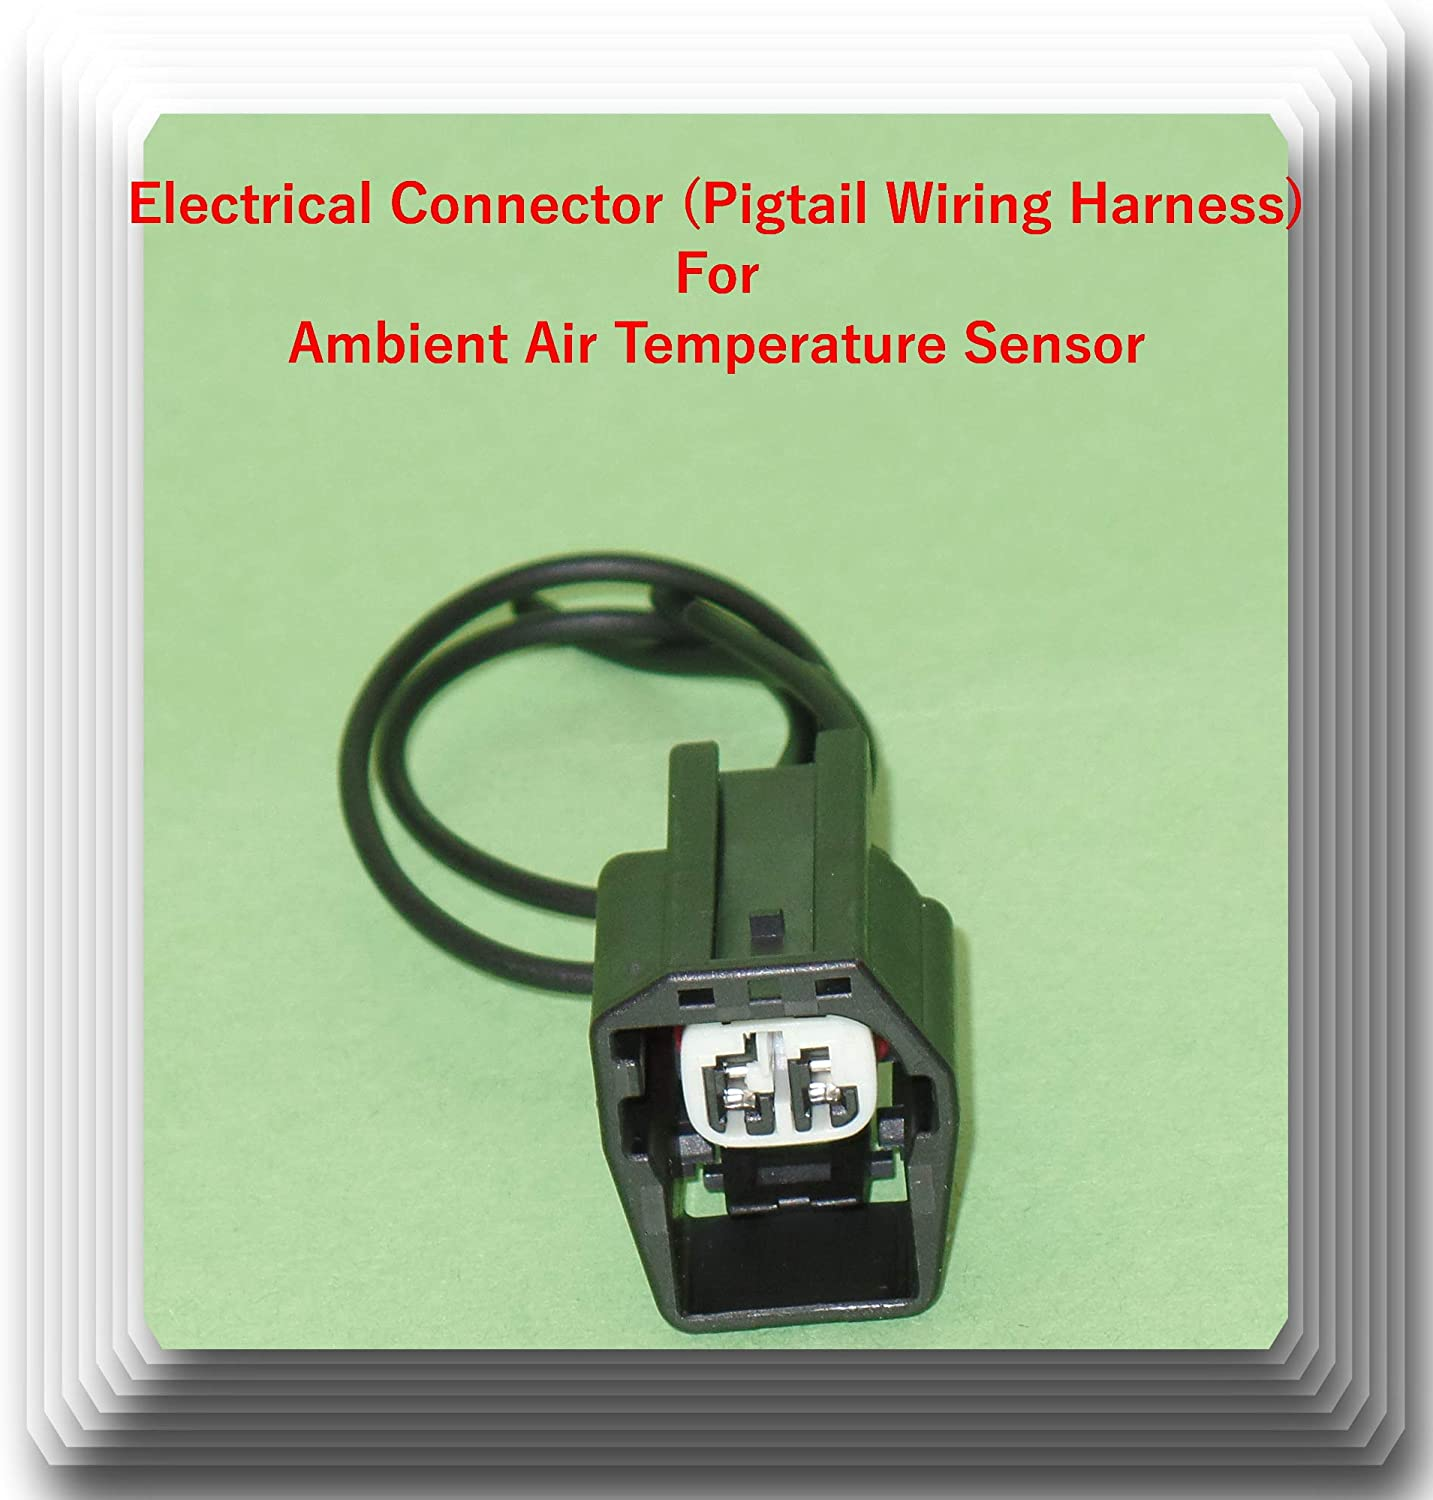 OE Spec Luxury goods AX123 Electrical Connector Se Al sold out. Temperature of Ambient Air